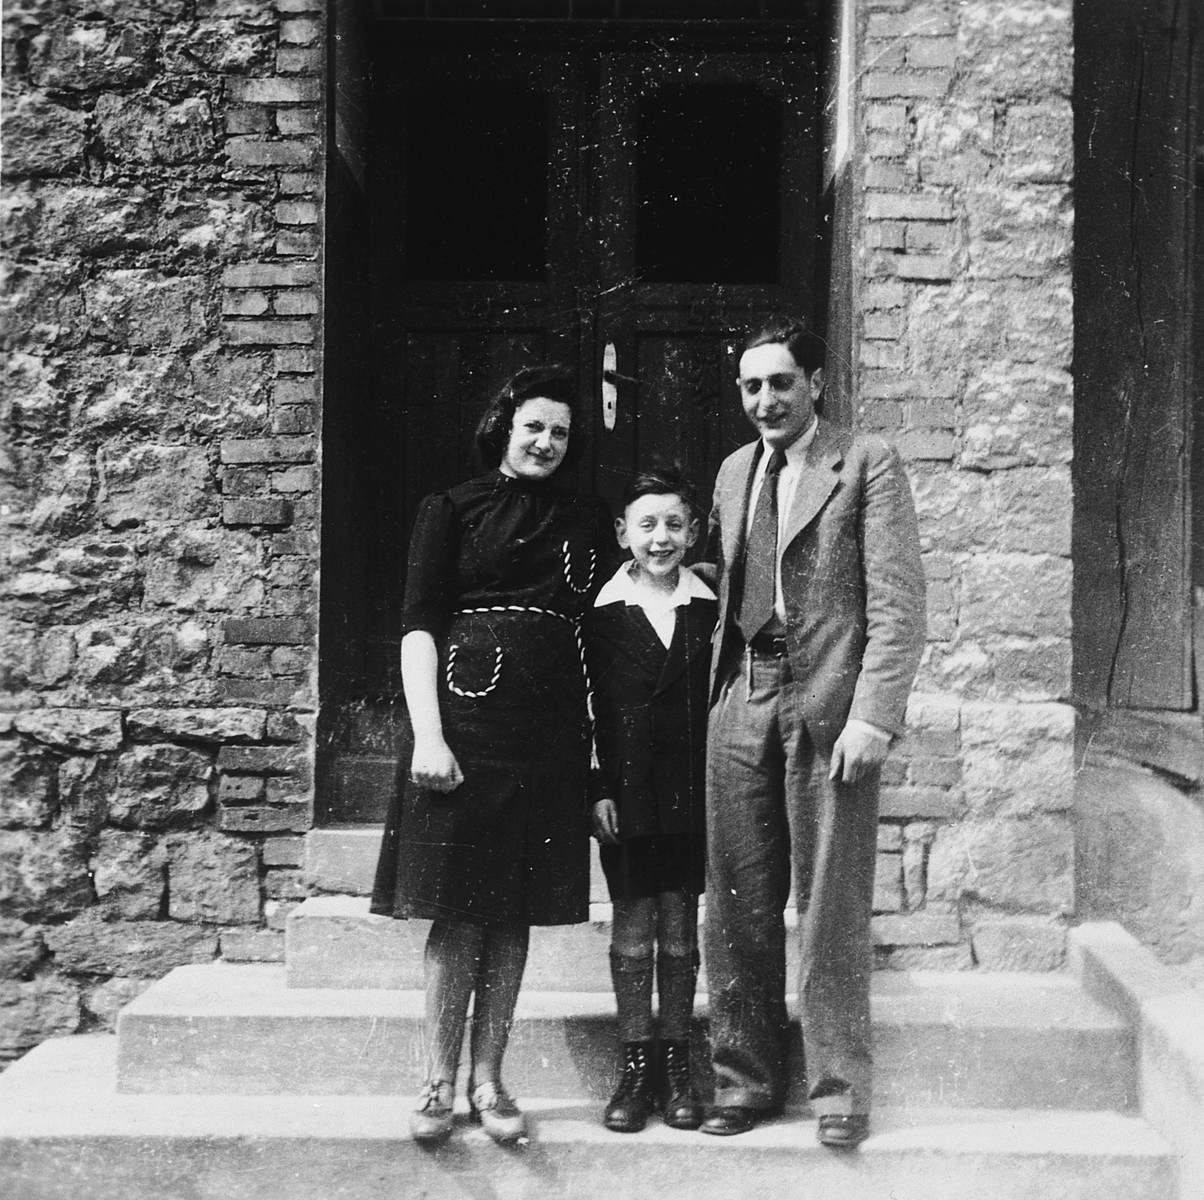 A German-Jewish boy poses outside his home in Rimbeck, Germany with his parents on the occasion of his bar mitzvah.  Pictured are Mathilde, Ludwig and Siegfried Fischel.  Half a year later the family was deported to Riga.